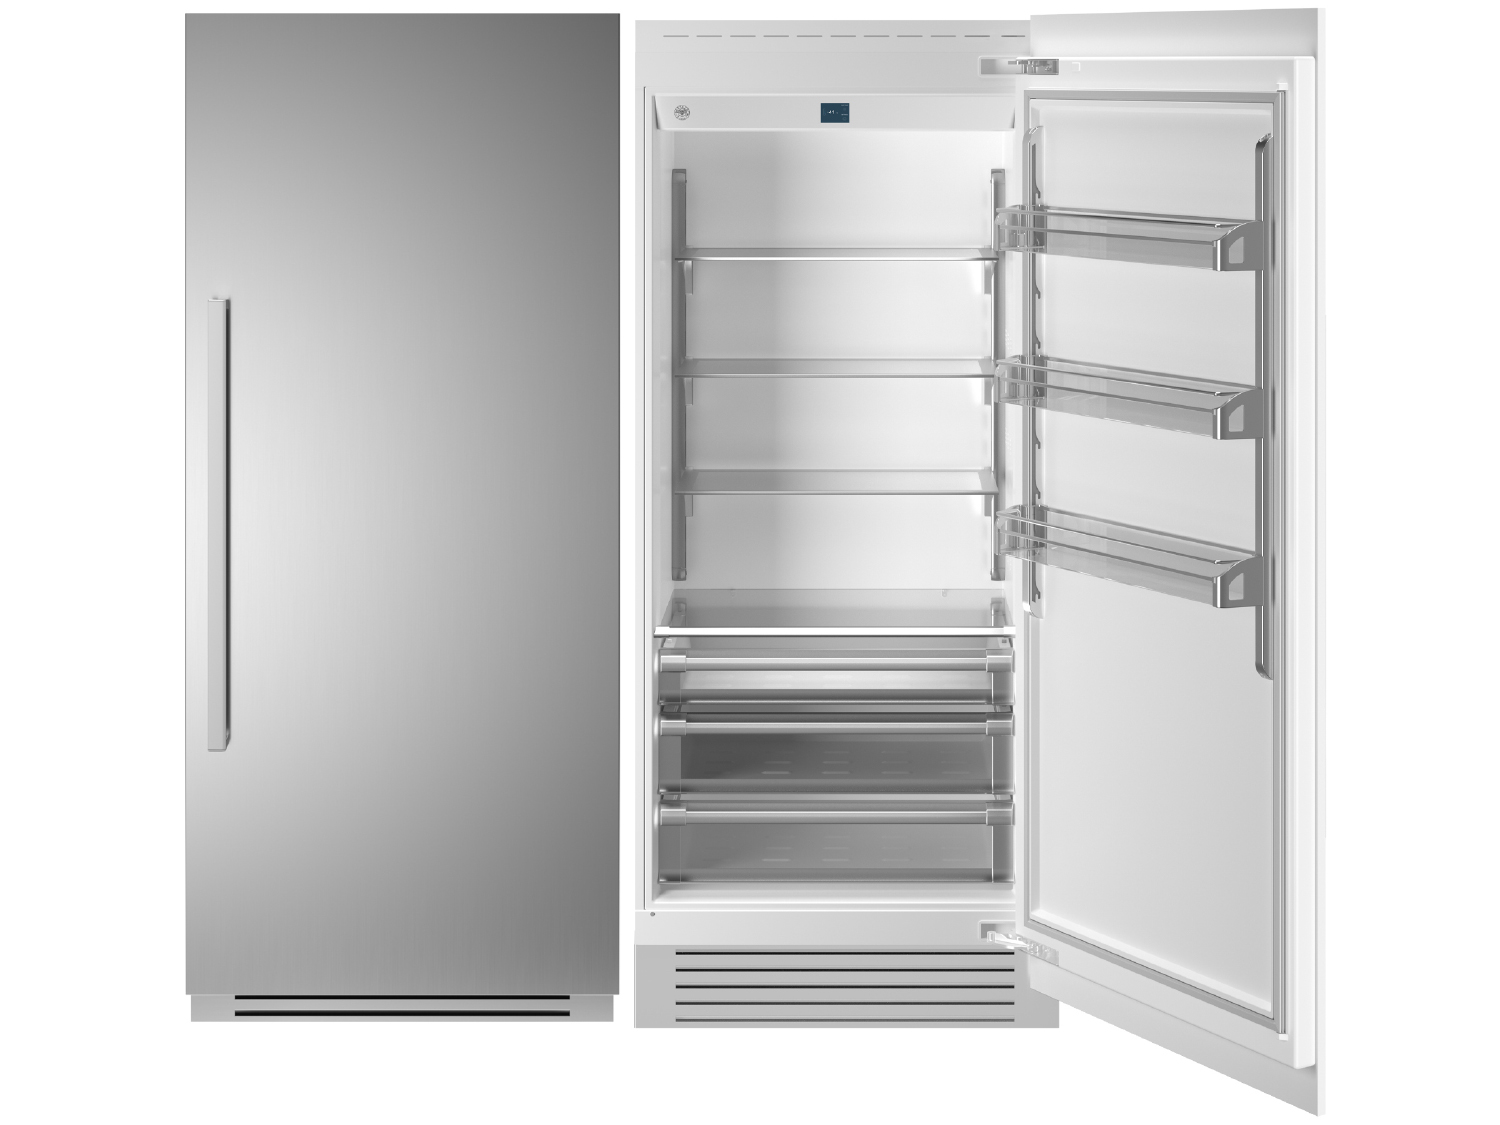 "Bertazzoni 36"" Built-in Refrigerator column - Stainless - Right hinge"